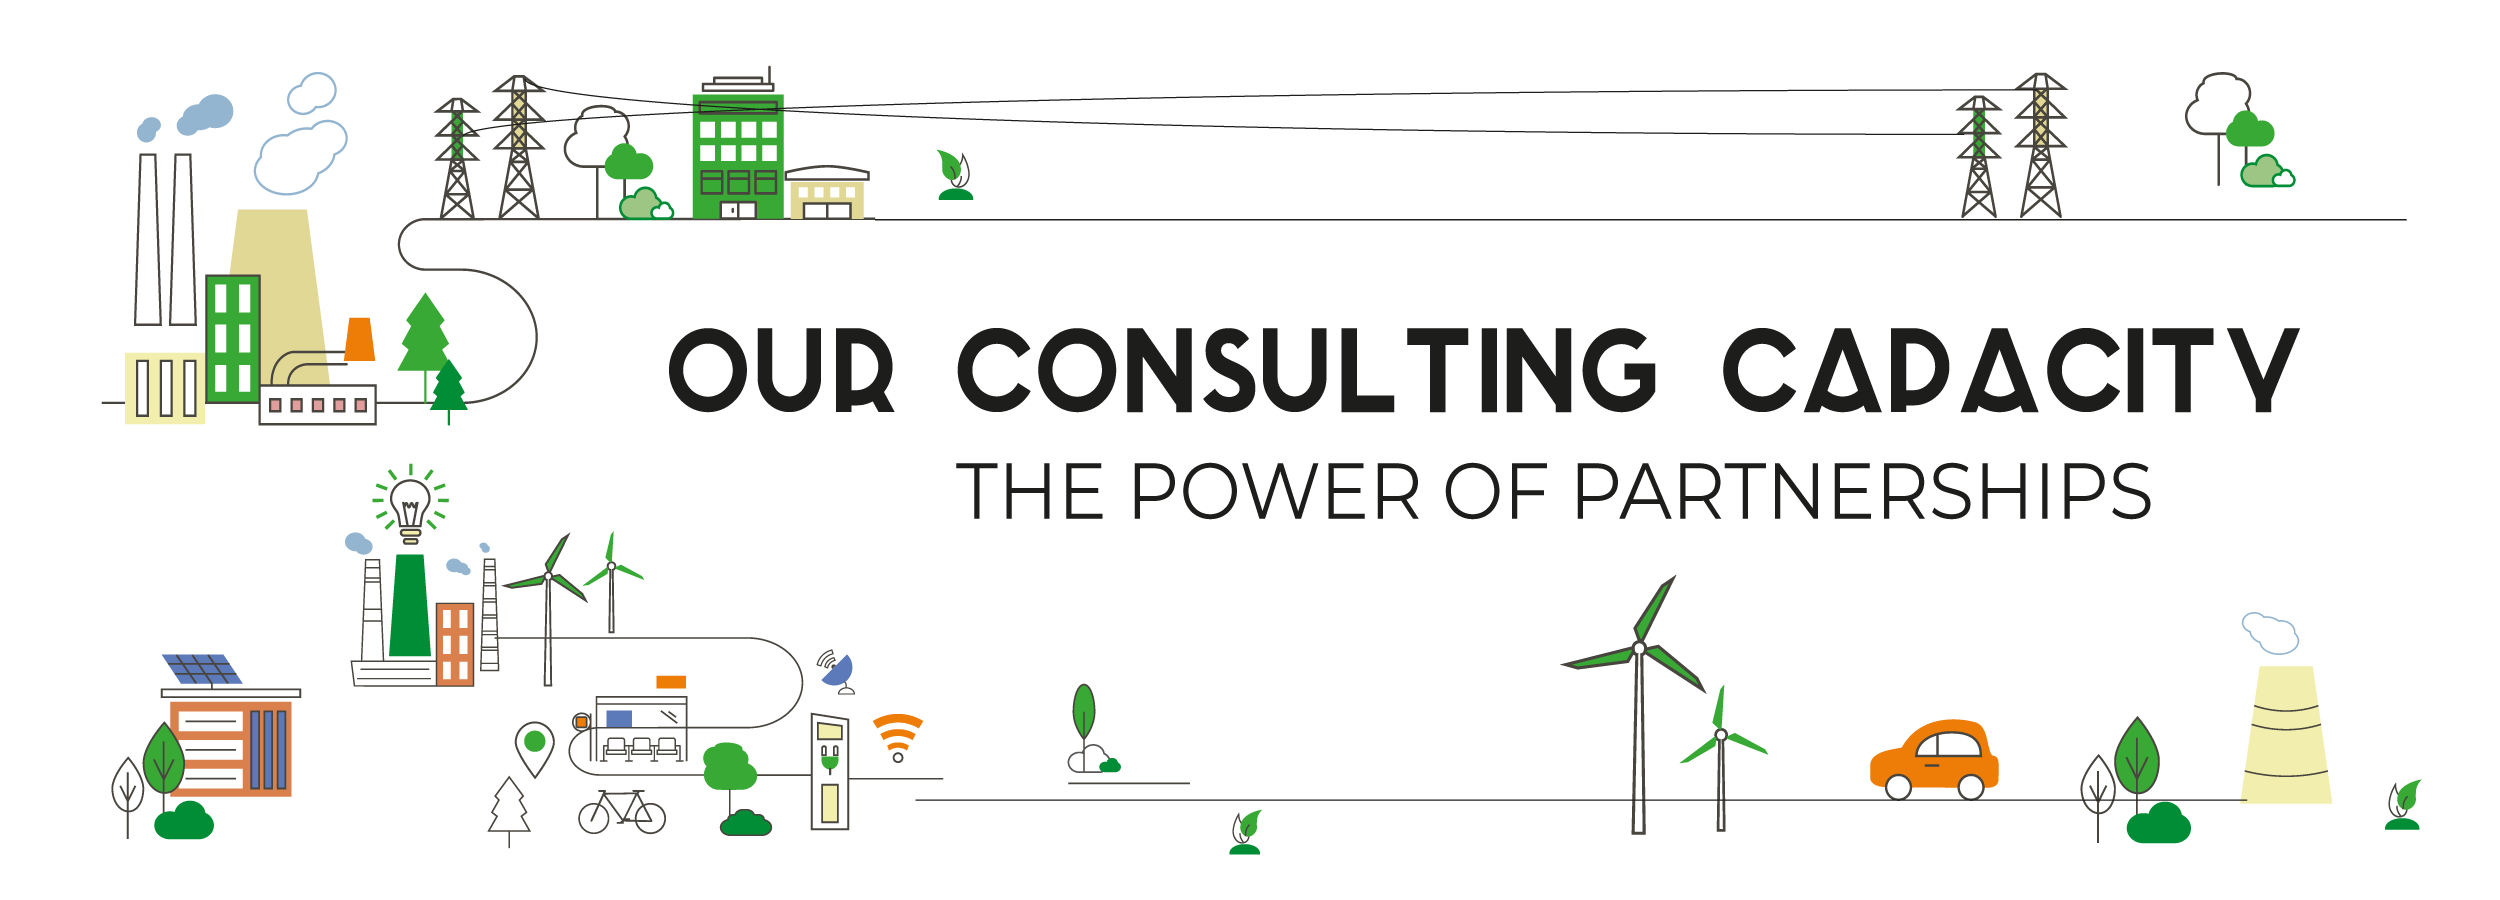 Our Consulting Capacity